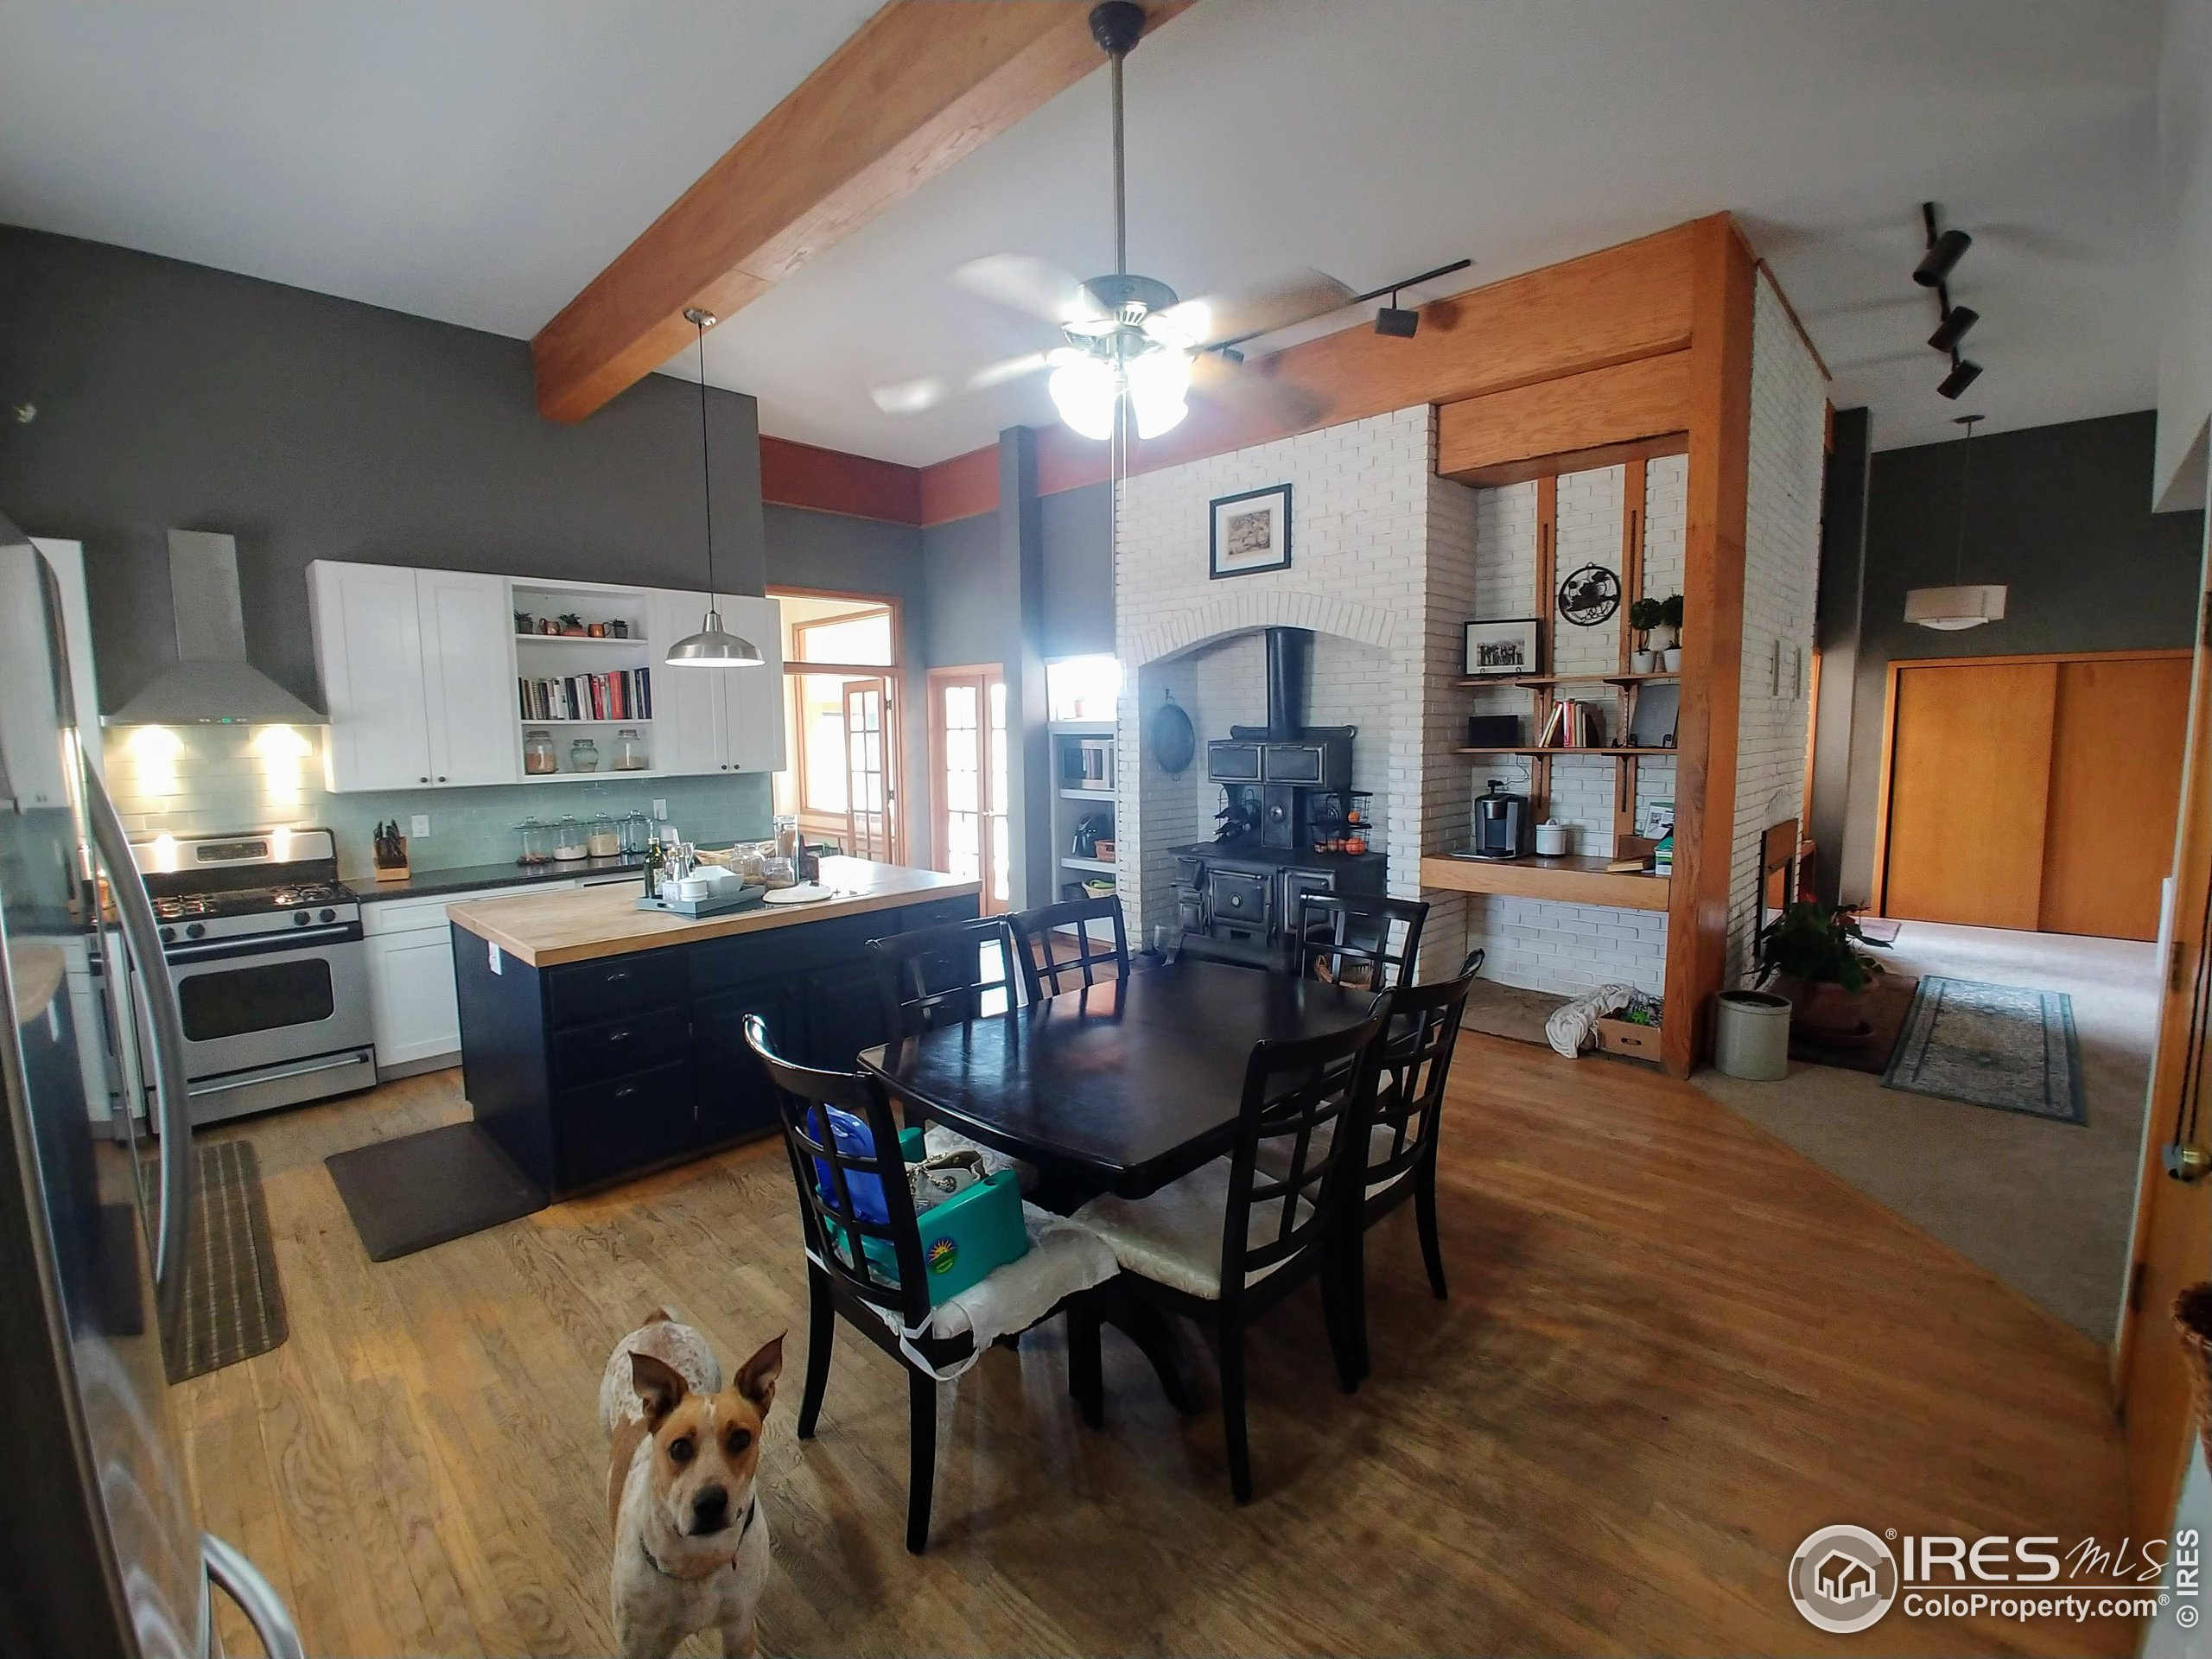 Kitchen from near garage entry. LR is on the R, FR and sunroom doors to the L of the woodstove. Buddy is not included :)